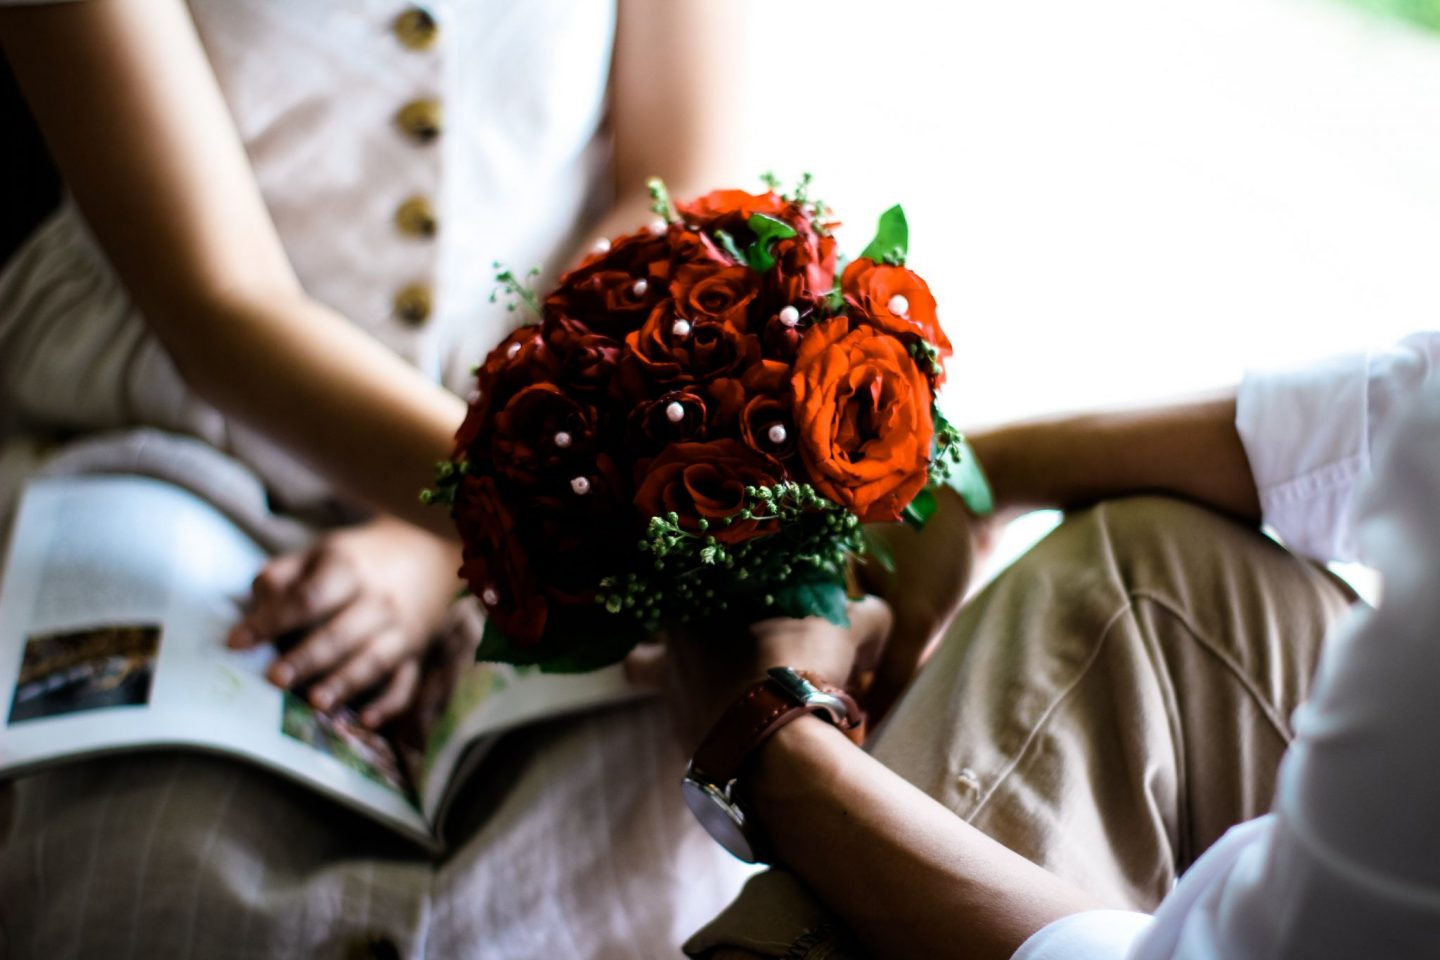 HOW THE TRADITION OF GIVING FLOWERS BEGAN